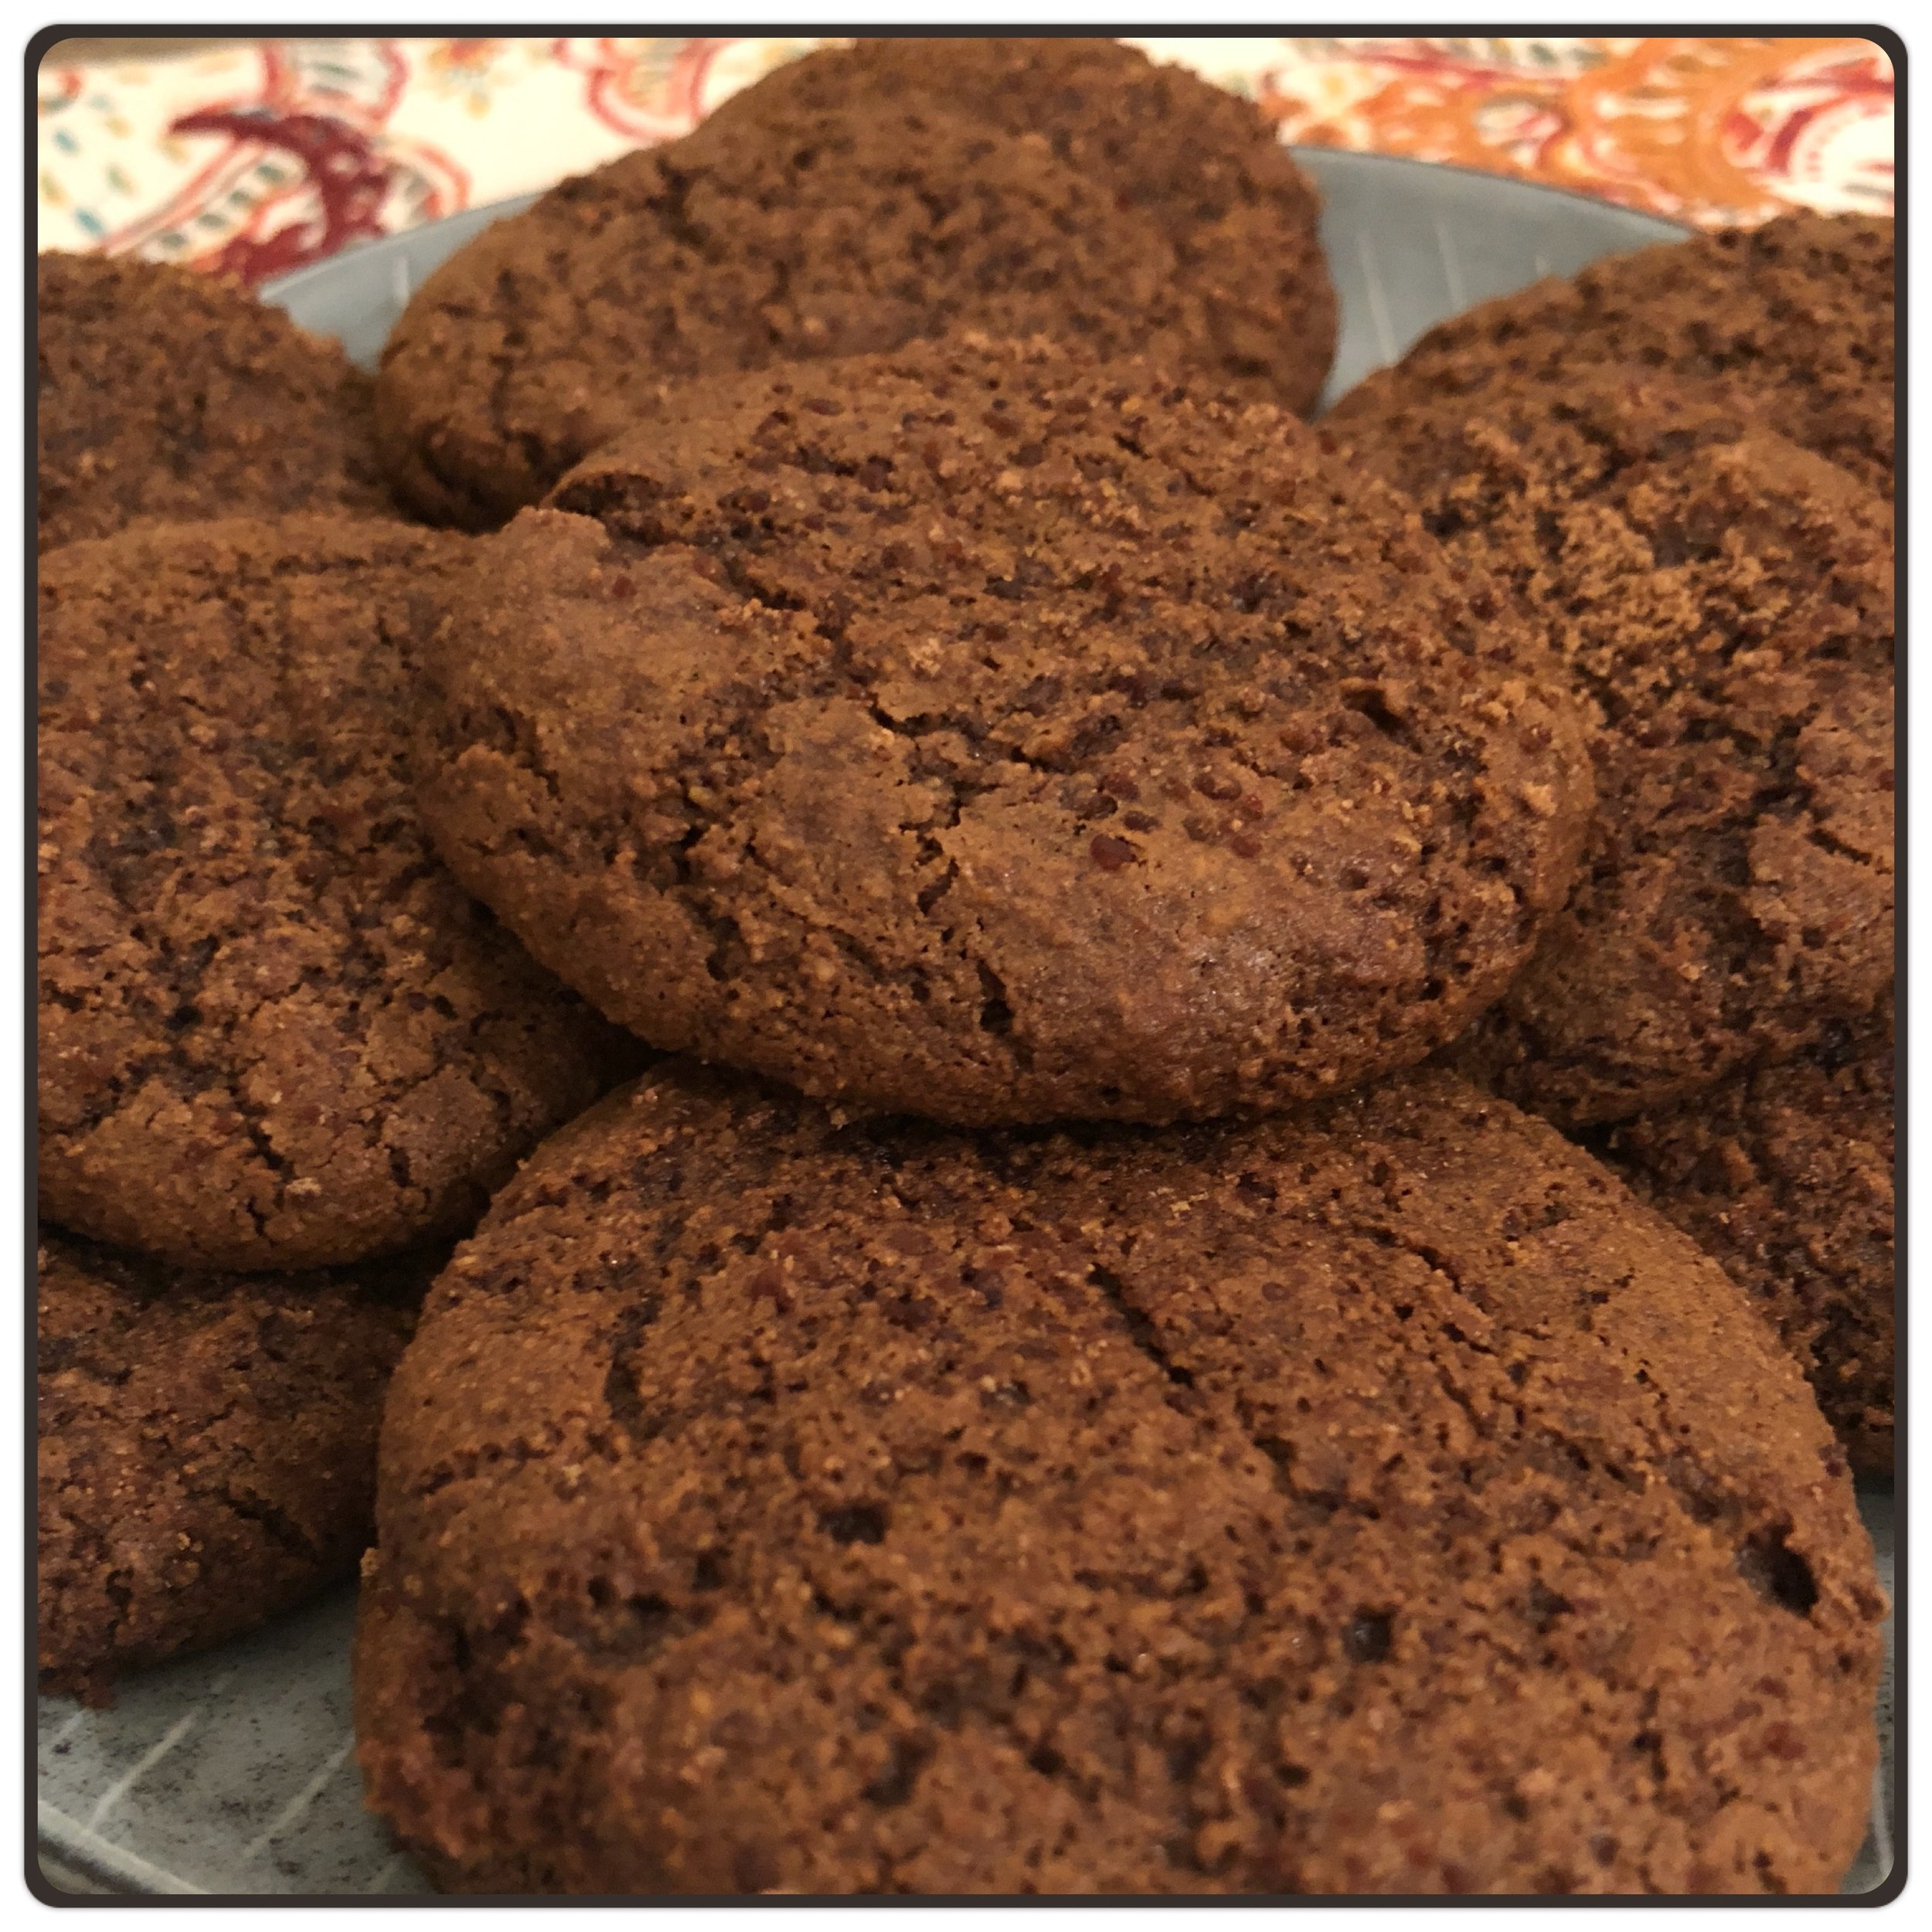 Molasses Ginger Cookies   Dry Ingredients:  2/3 cup Almond Flour 1/2 cup Coconut Flour  2 tbsp Coconut Sugar 1 tsp Ginger (ground) 1 tsp Cinnamon 1 tsp Baking Soda 1/4 tsp Cardamon 1/4 tsp Salt  Wet Ingredients:  2 Eggs 1/4 cup Blackstrap Molasses 1/4 cup Coconut Oil, melted 1 tsp Ginger (freshly grated) 1/4 cup Almond Butter 1 tsp Vanilla Extract  Directions:  1. Pre-heat the oven to 350 degrees F.    2. Mix the dry ingredients in a small bowl.  3. Combine the wet ingredients in a large bowl, mix until smooth.  4. Stir the dry ingredients into the large bowl with the wet ingredients.  5. Chill the dough for 15 minutes or until firm.  6. Line a cookie sheet with parchment paper.  7. Roll the dough into 1 inch balls, flatten with a fork.  8. Bake for 8-10 minutes, let cool on a baking rack.